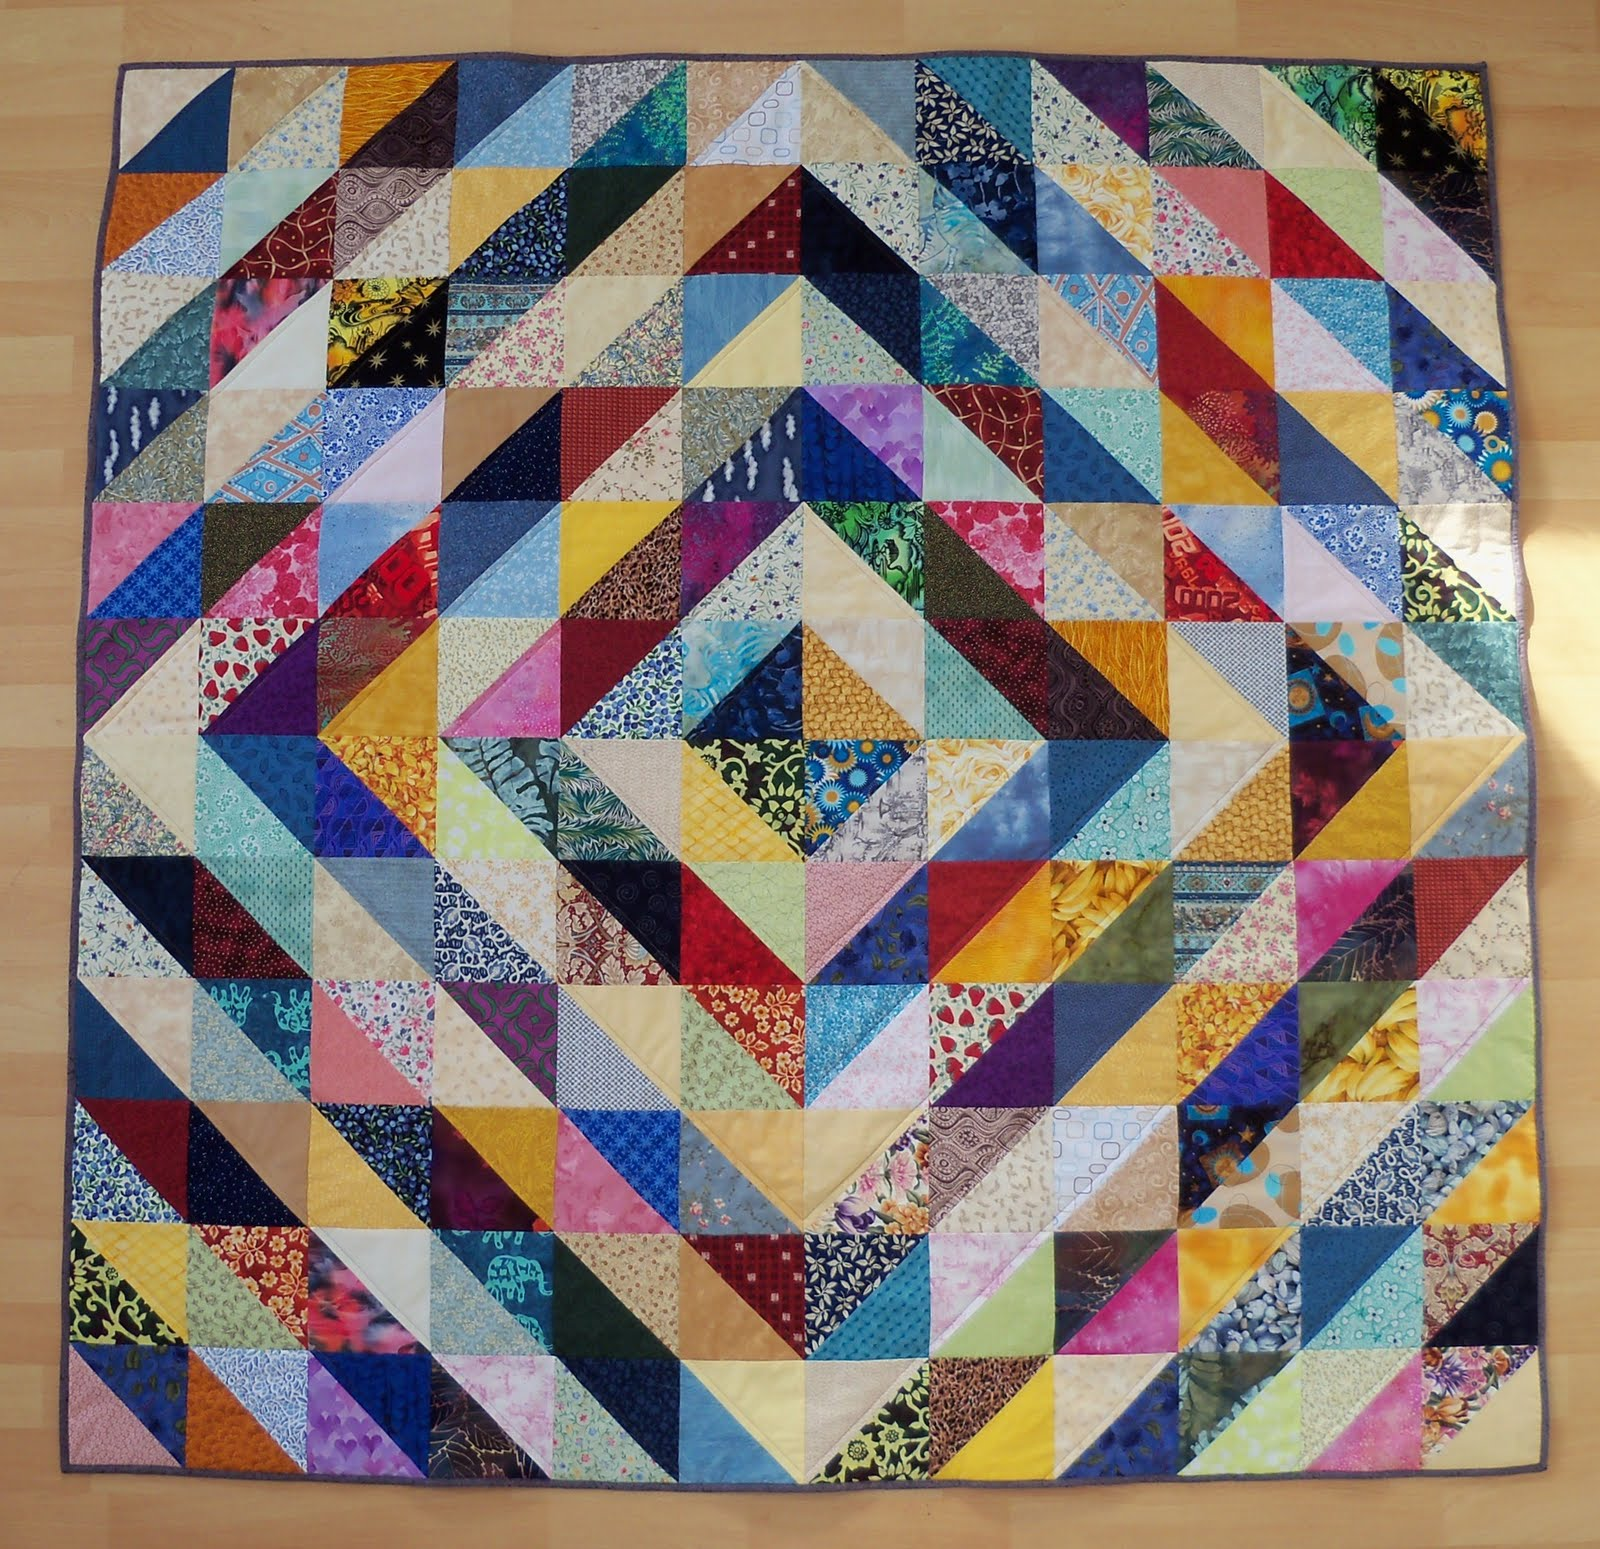 Sew Lovely: Value Quilt - Half Square Triangles